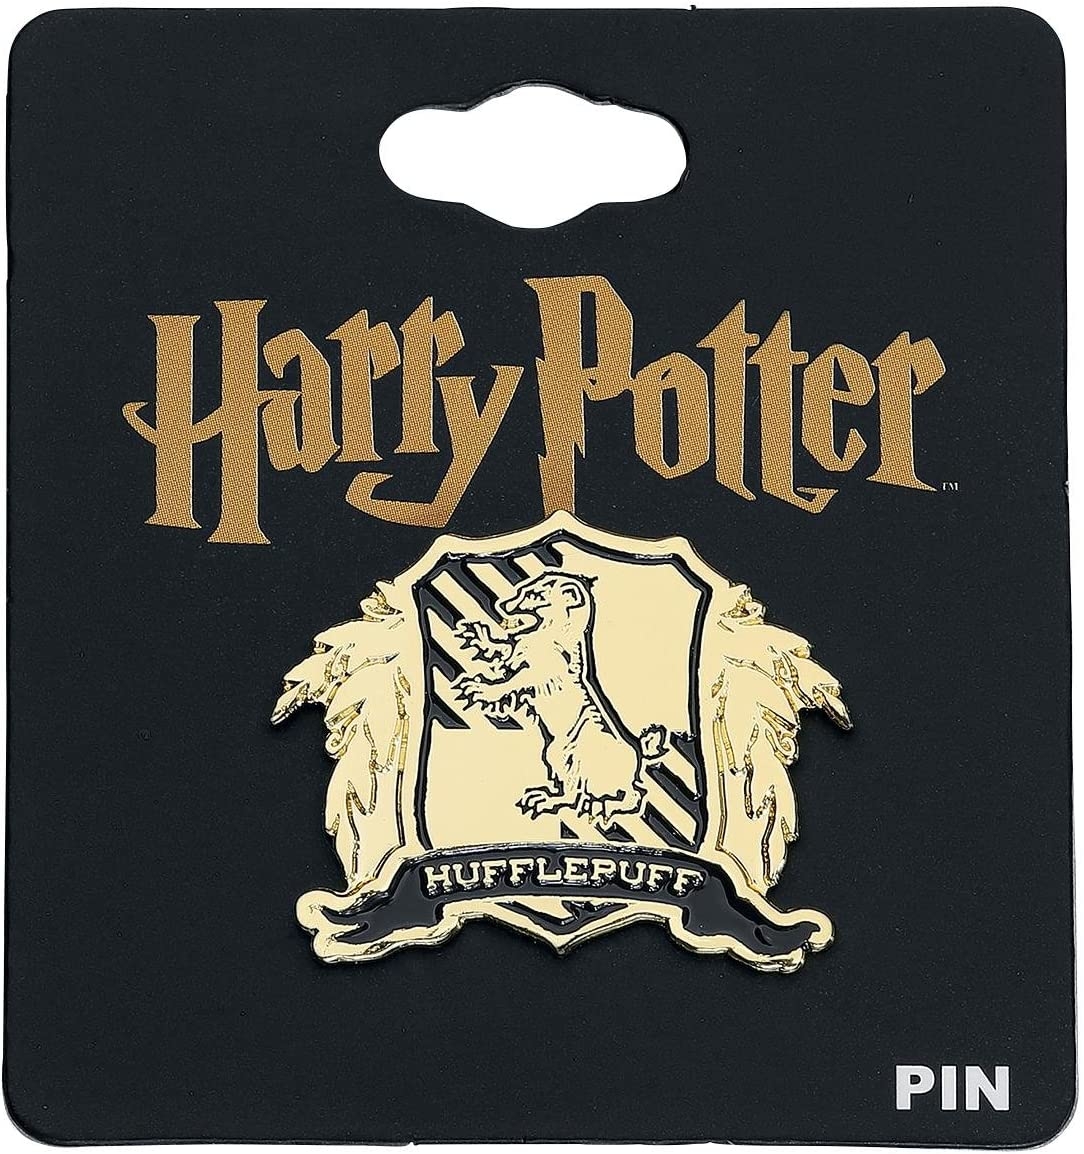 Harry Special sale item Potter Hufflepuff Pin Lapel Max 42% OFF